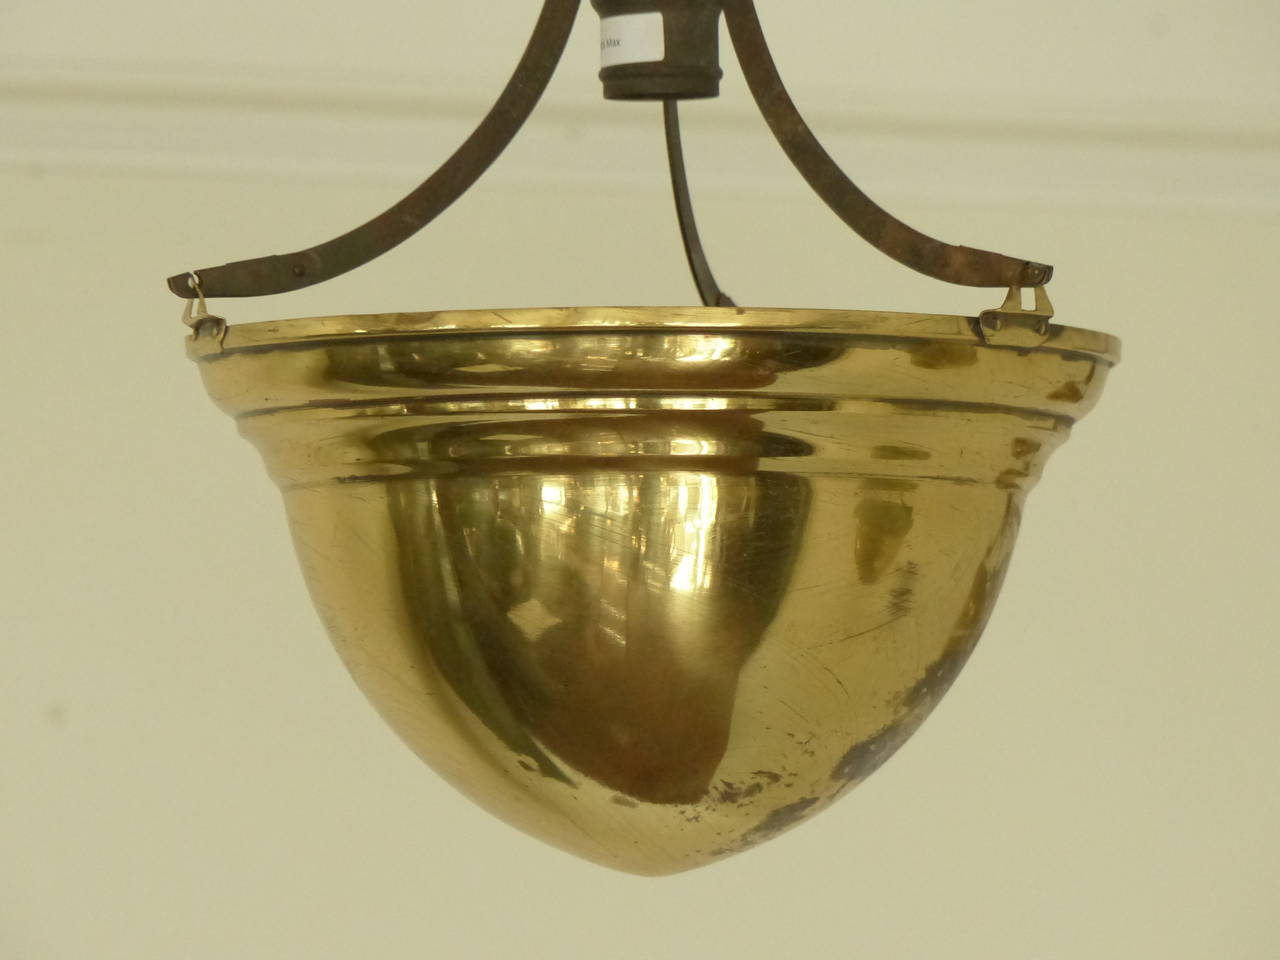 Brass Chandelier Ceiling Lights : Brass cone ceiling light fixtures for sale at stdibs